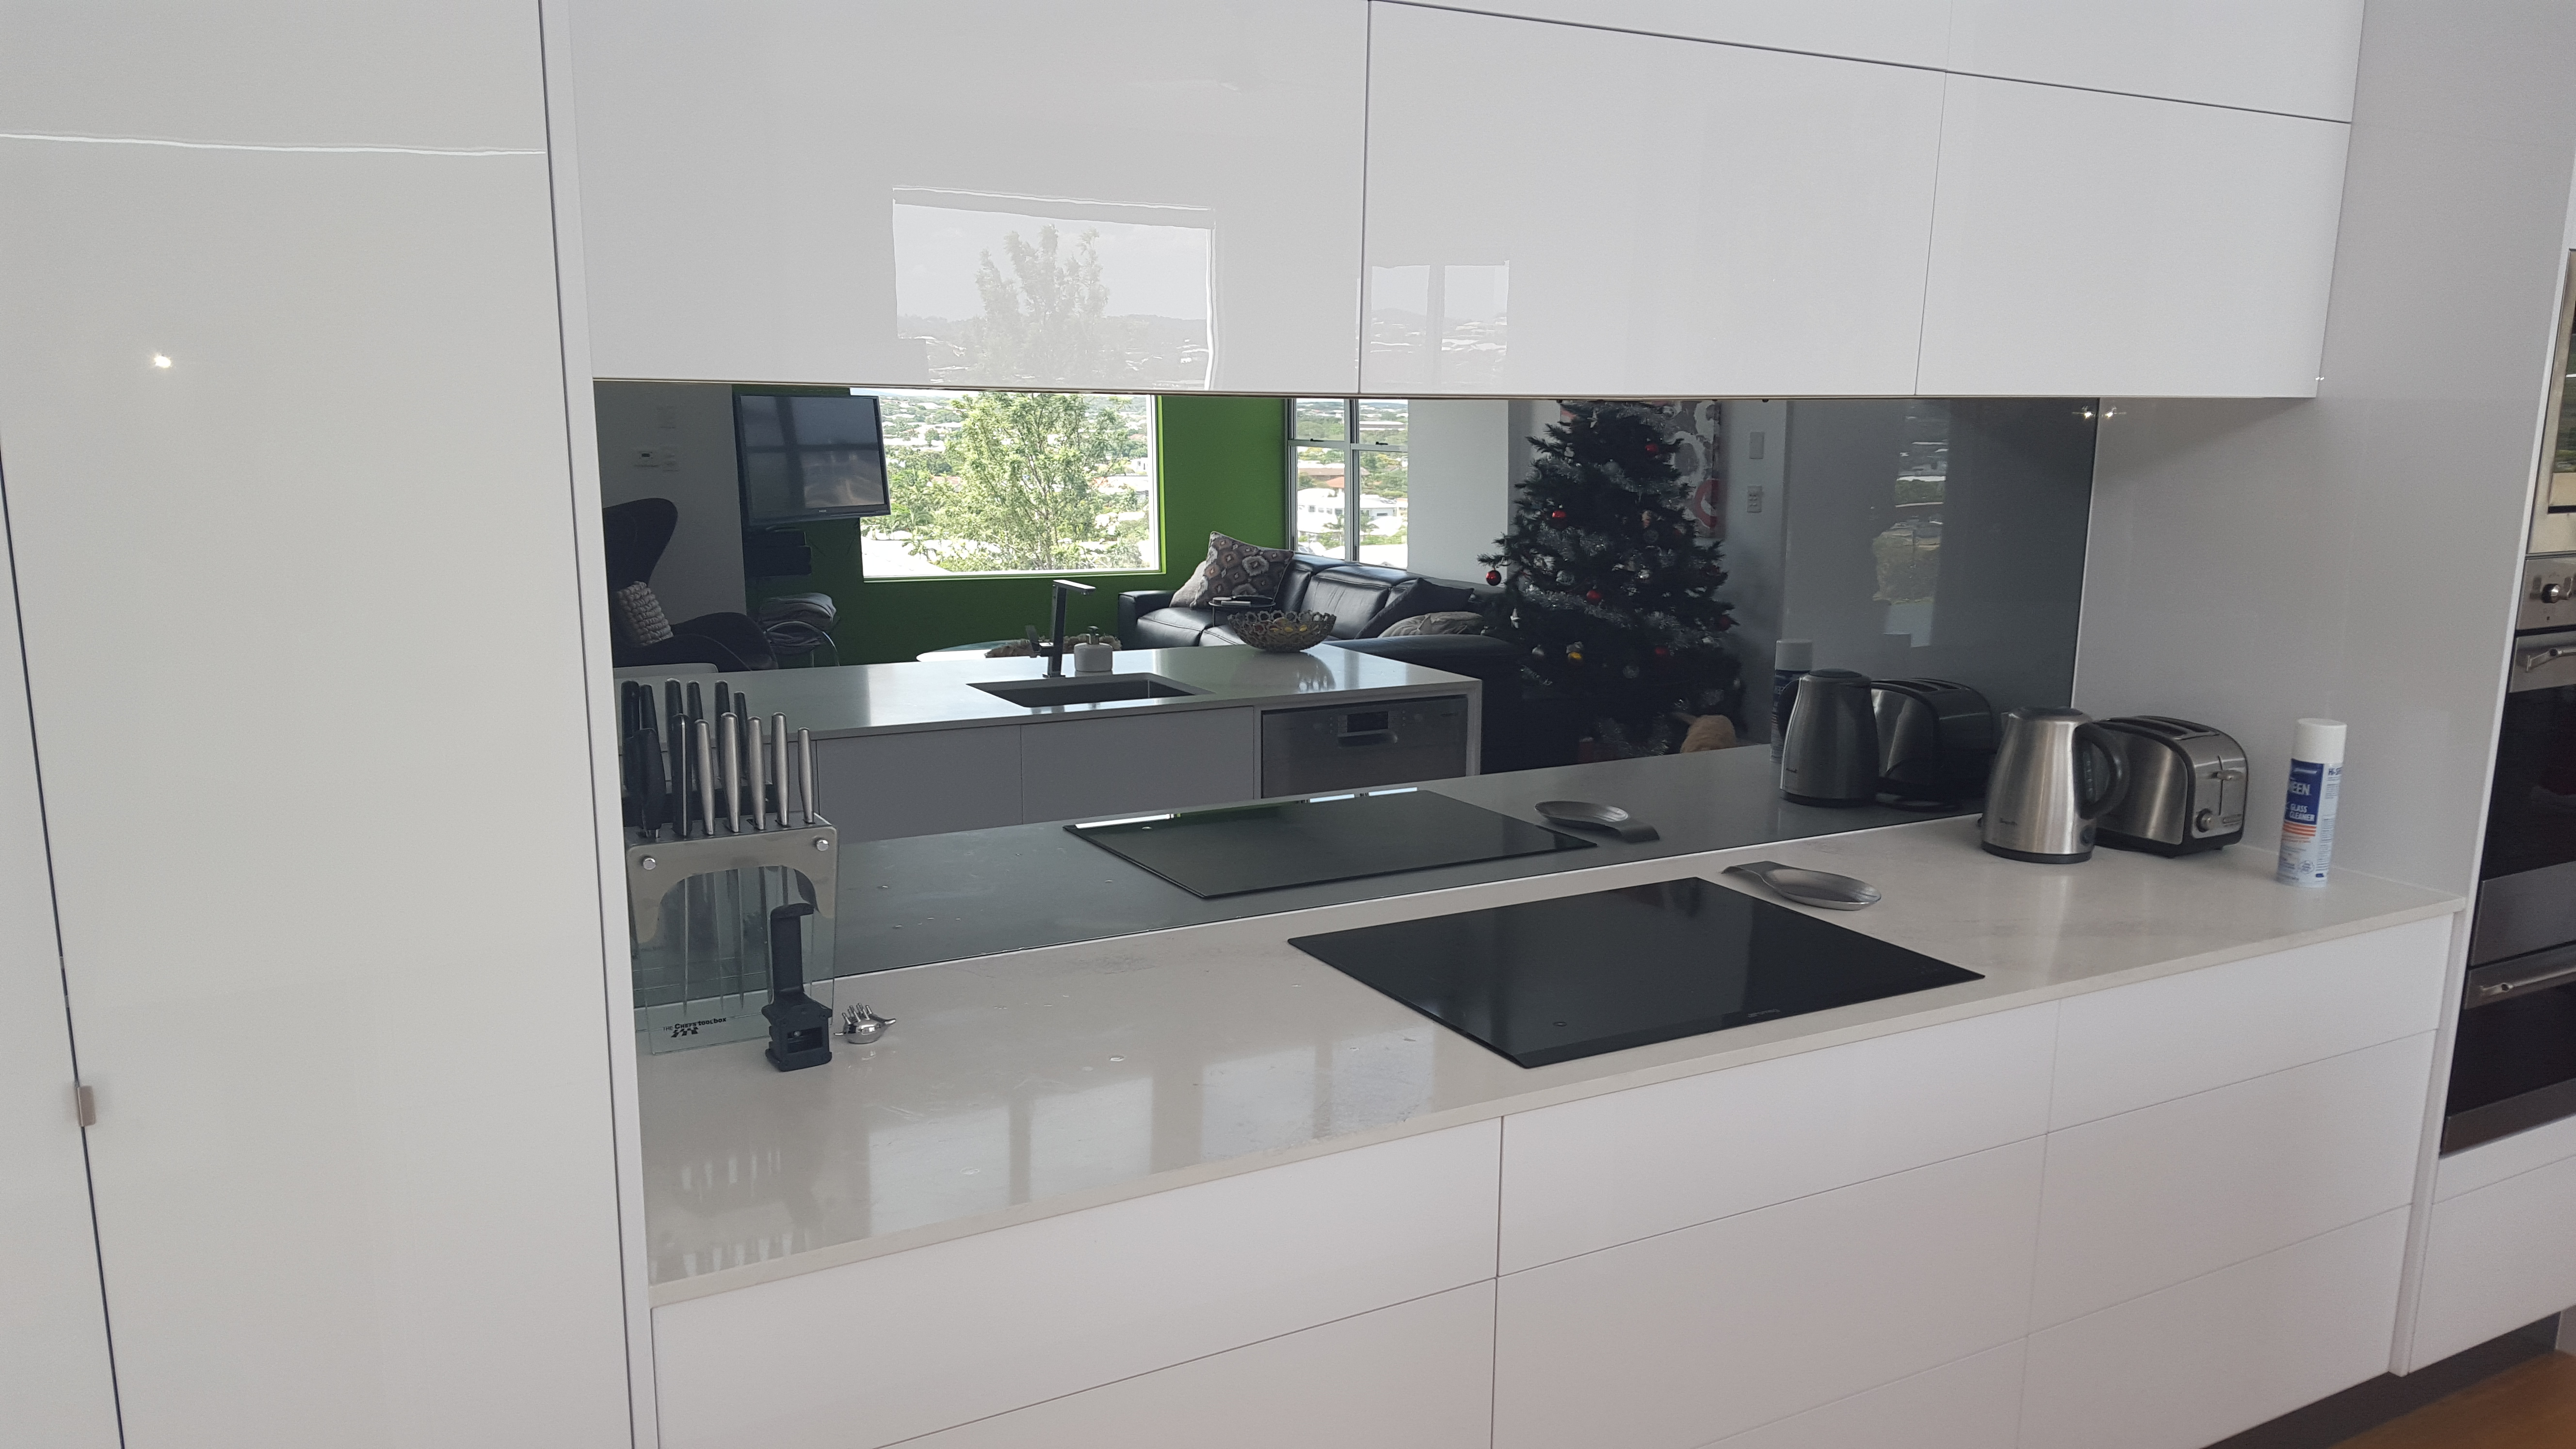 Painted mirror toughened splashback